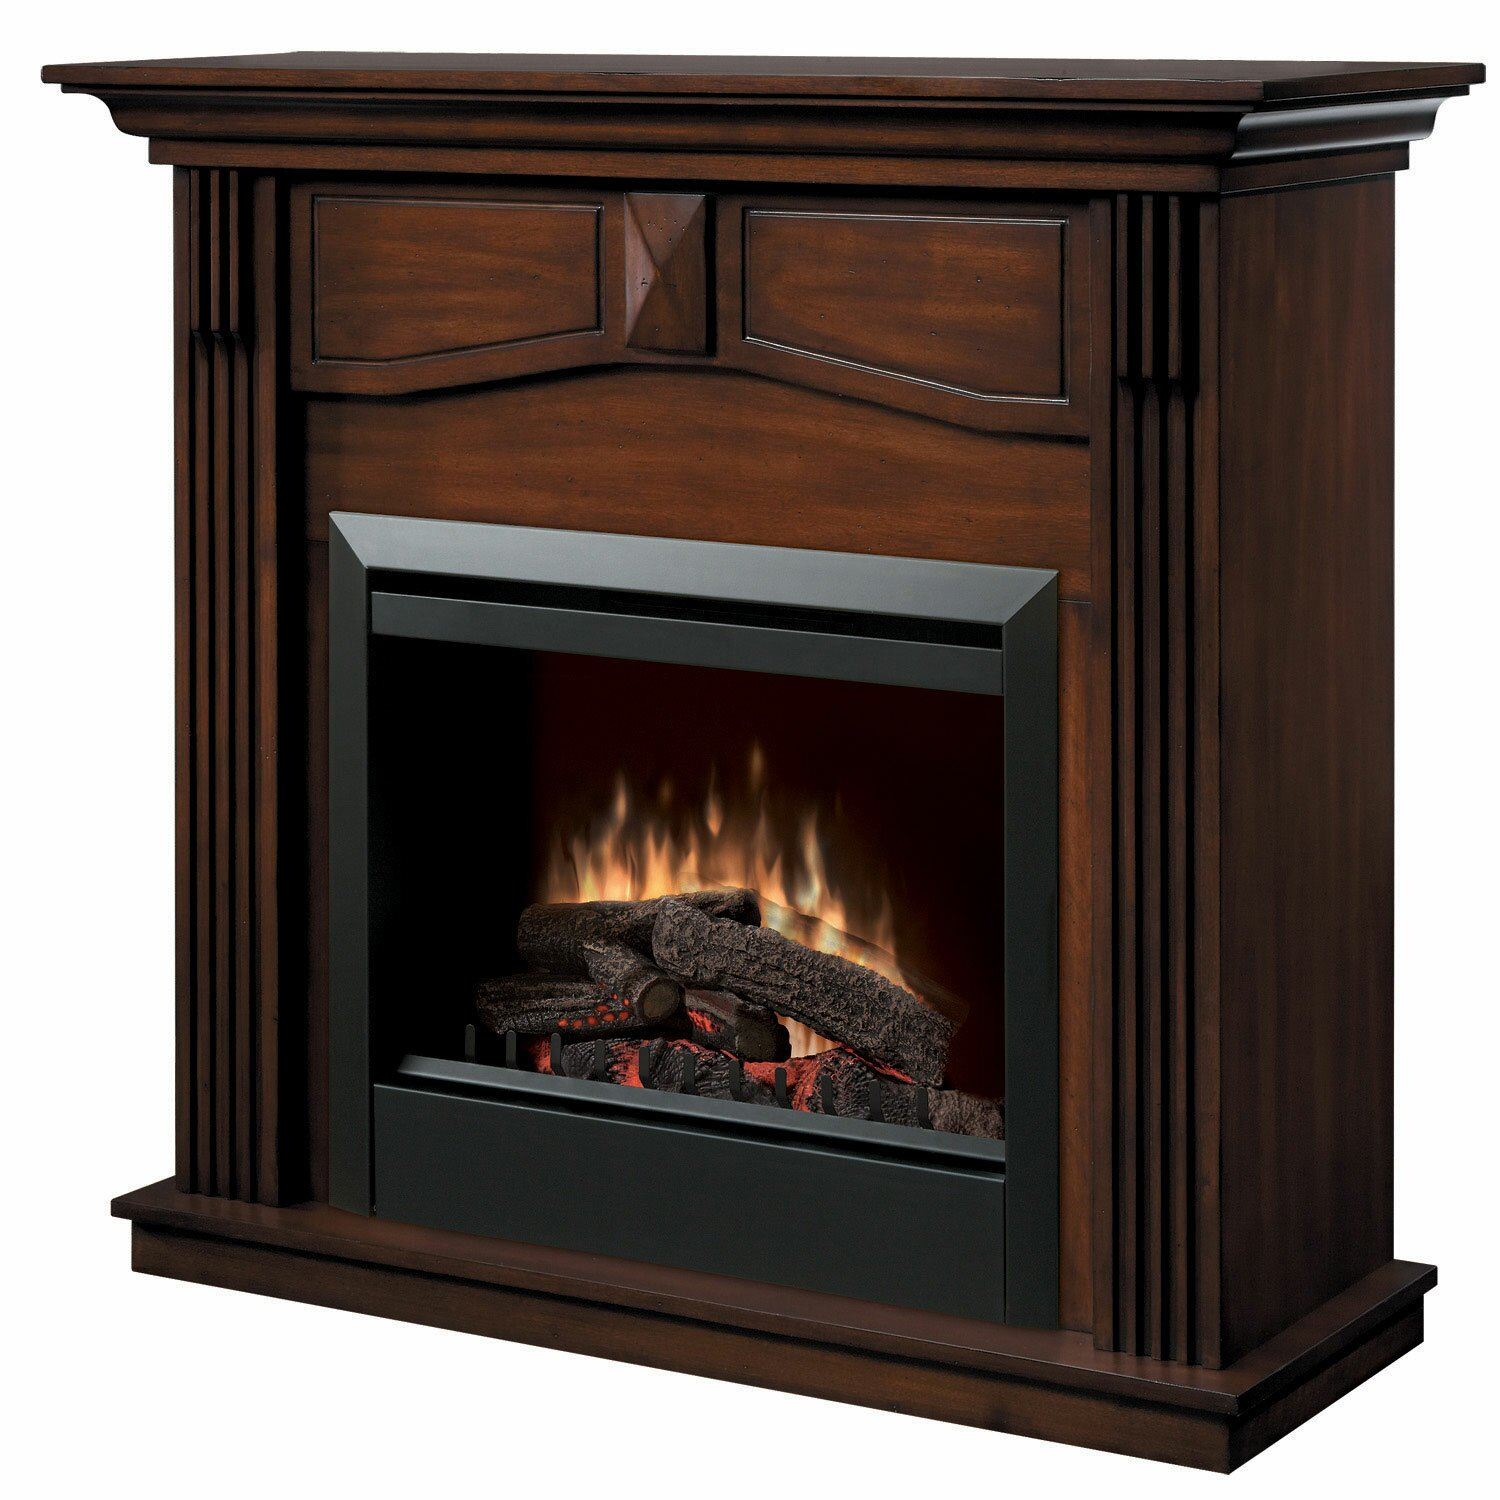 dimplex electraflame holbrook electric fireplace reviews wayfair dimplex electraflame holbrook electric fireplace